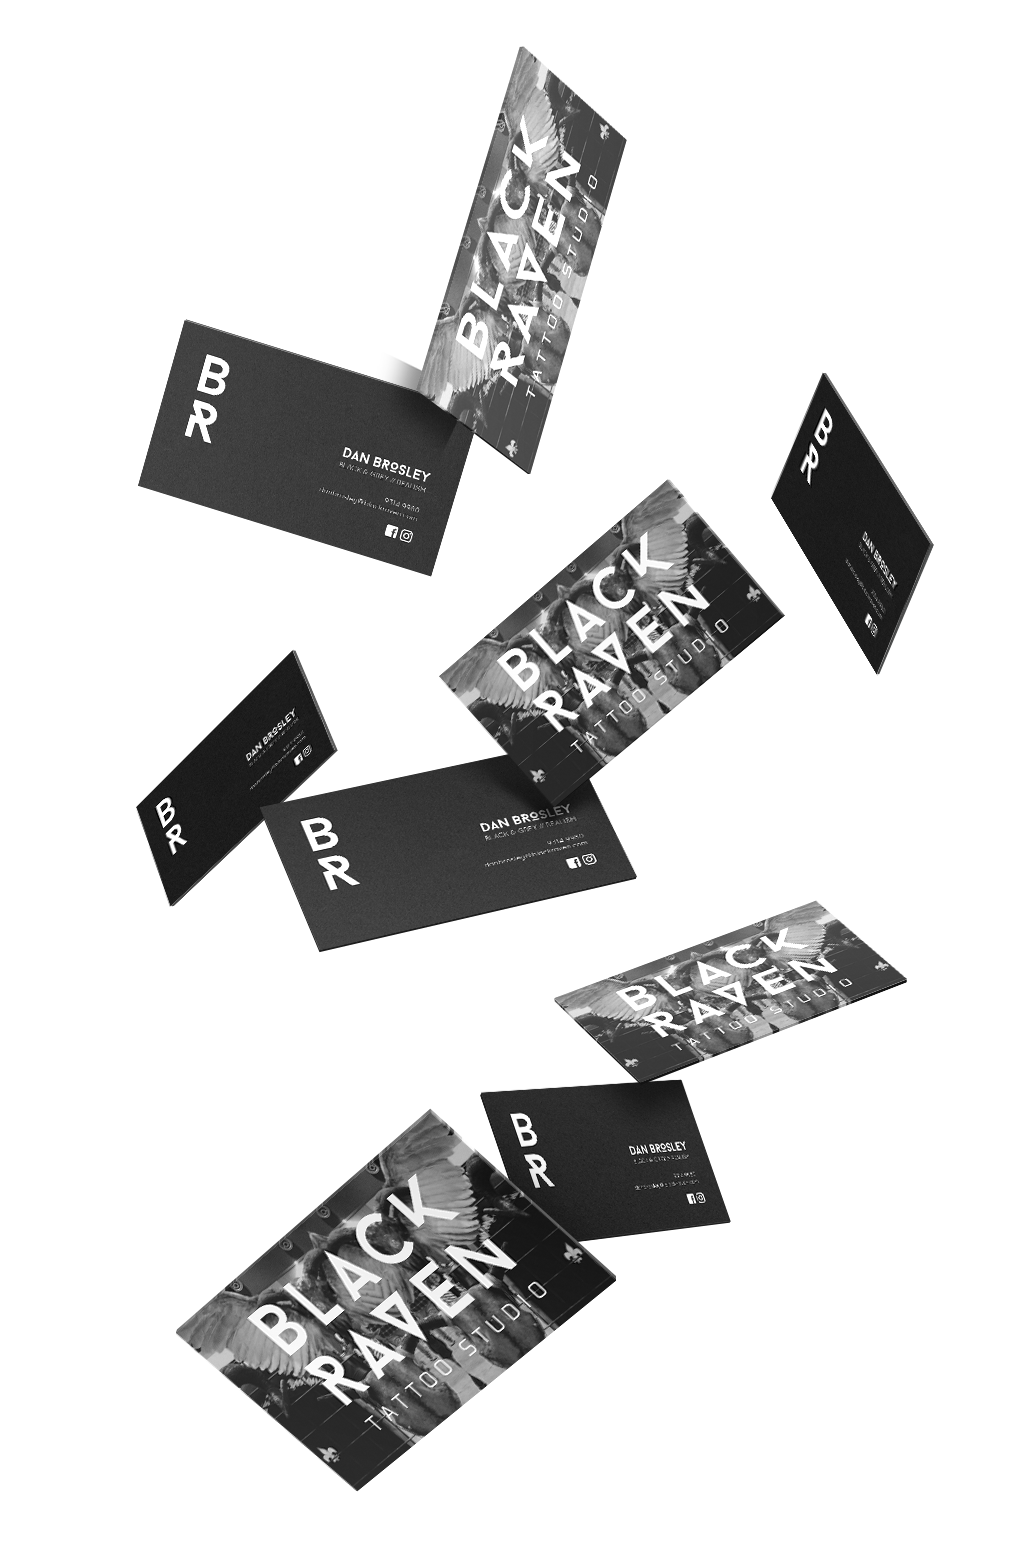 flyingbusinesscards.png